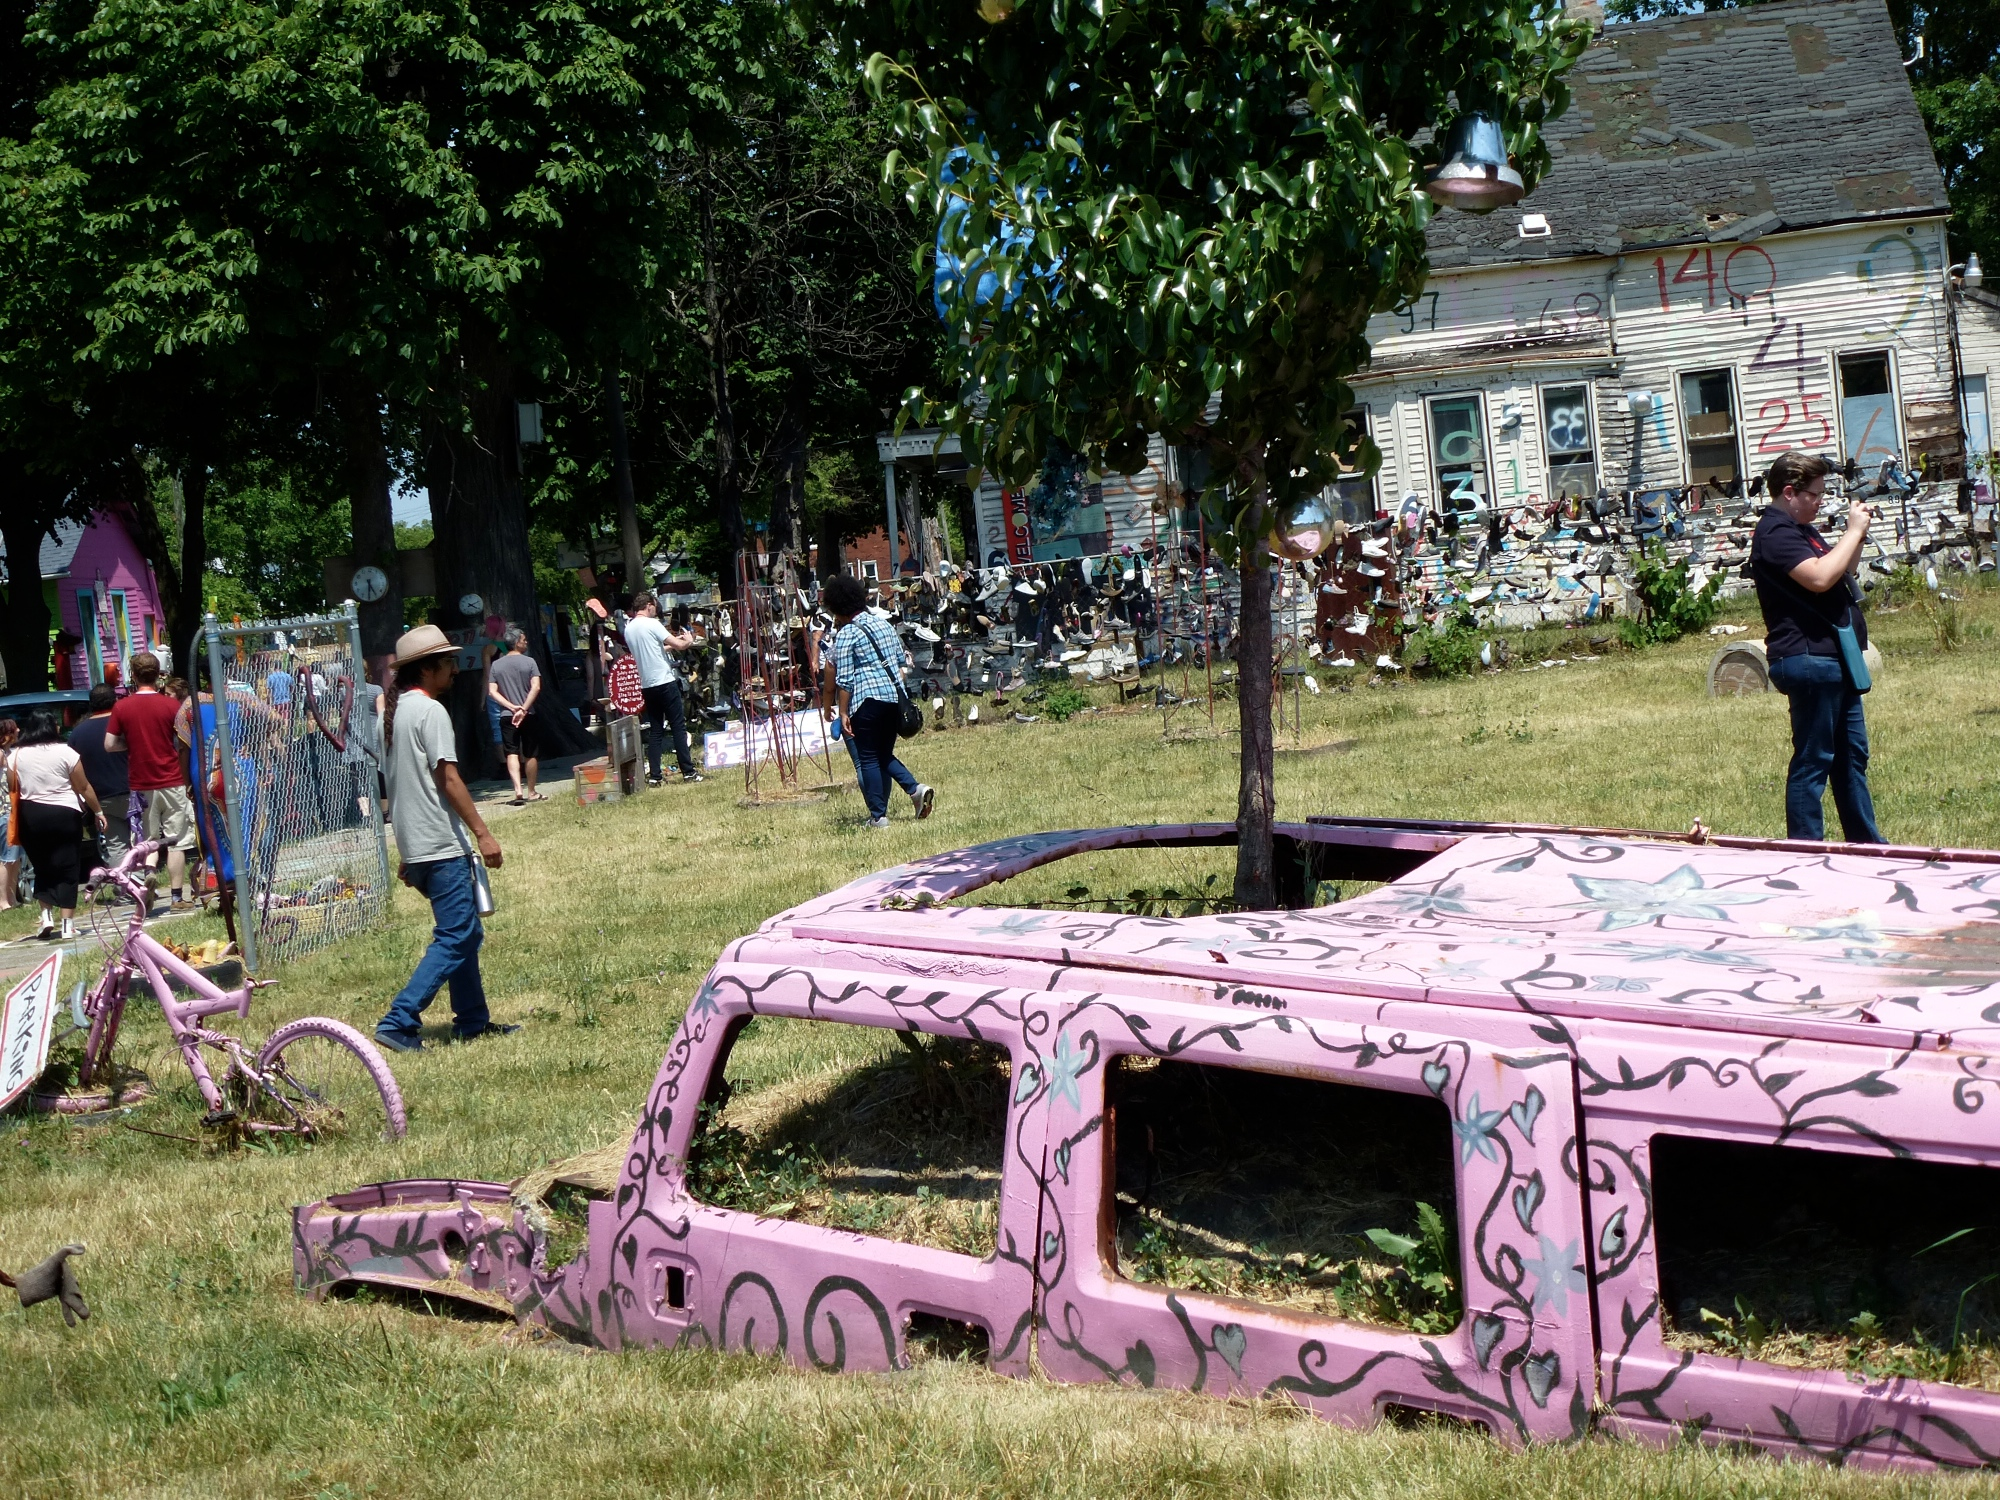 A Hummer appears to be half buried in the ground. Its windowless frame is painted matte pink with vine-like designs. A small tree grows out of its sunroof. In the background are a house, other outdoor art pieces, and people of various races and genders looking at them.